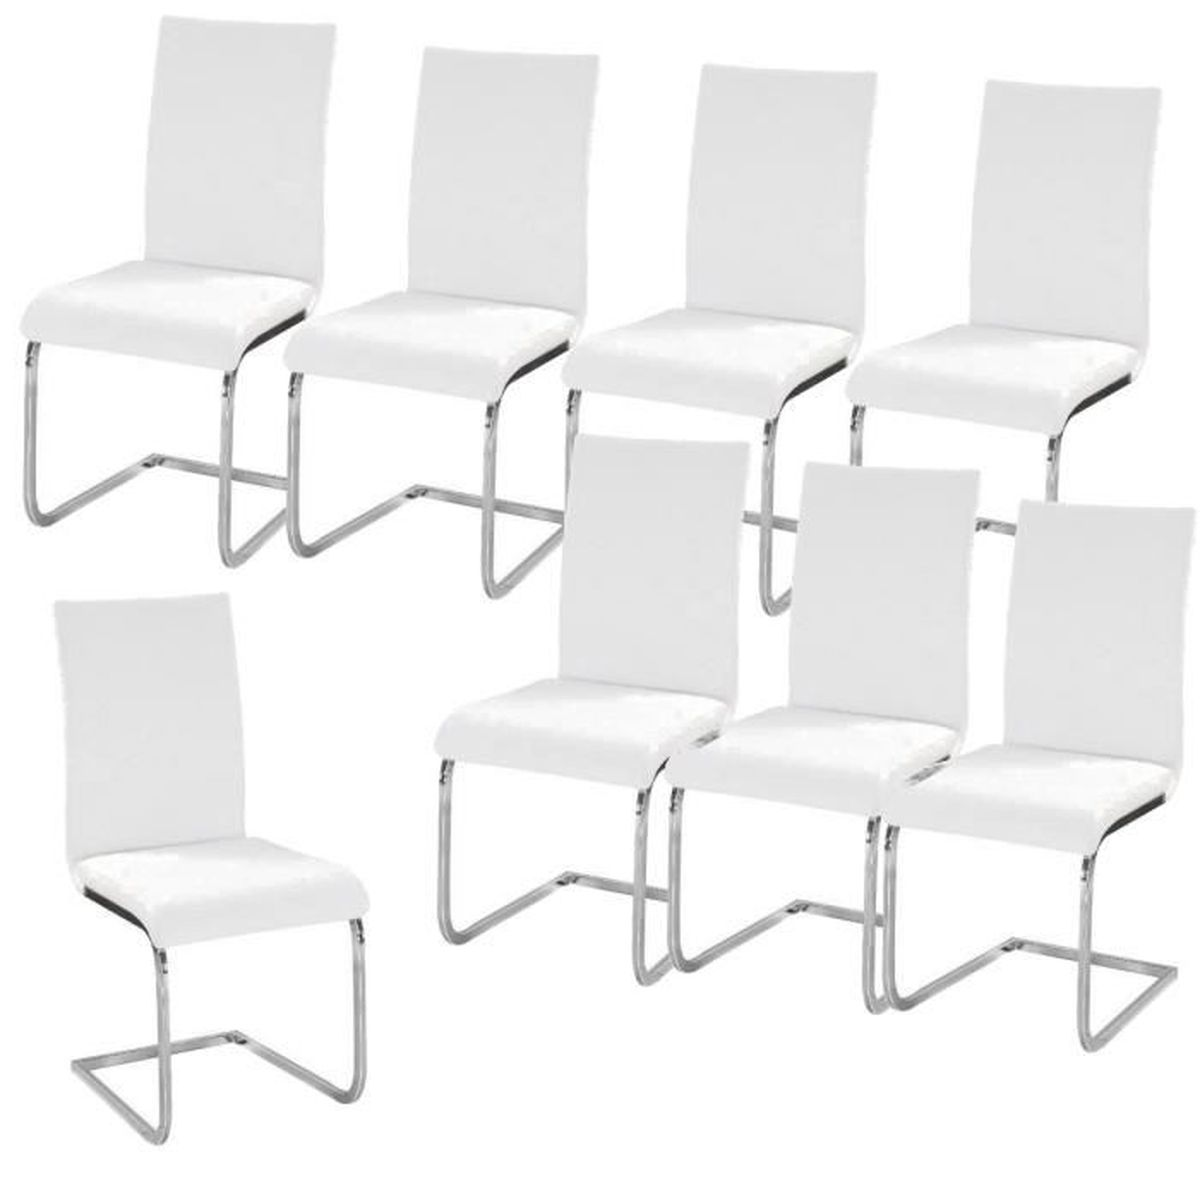 lea lot de 8 chaises de salle manger blanches achat. Black Bedroom Furniture Sets. Home Design Ideas